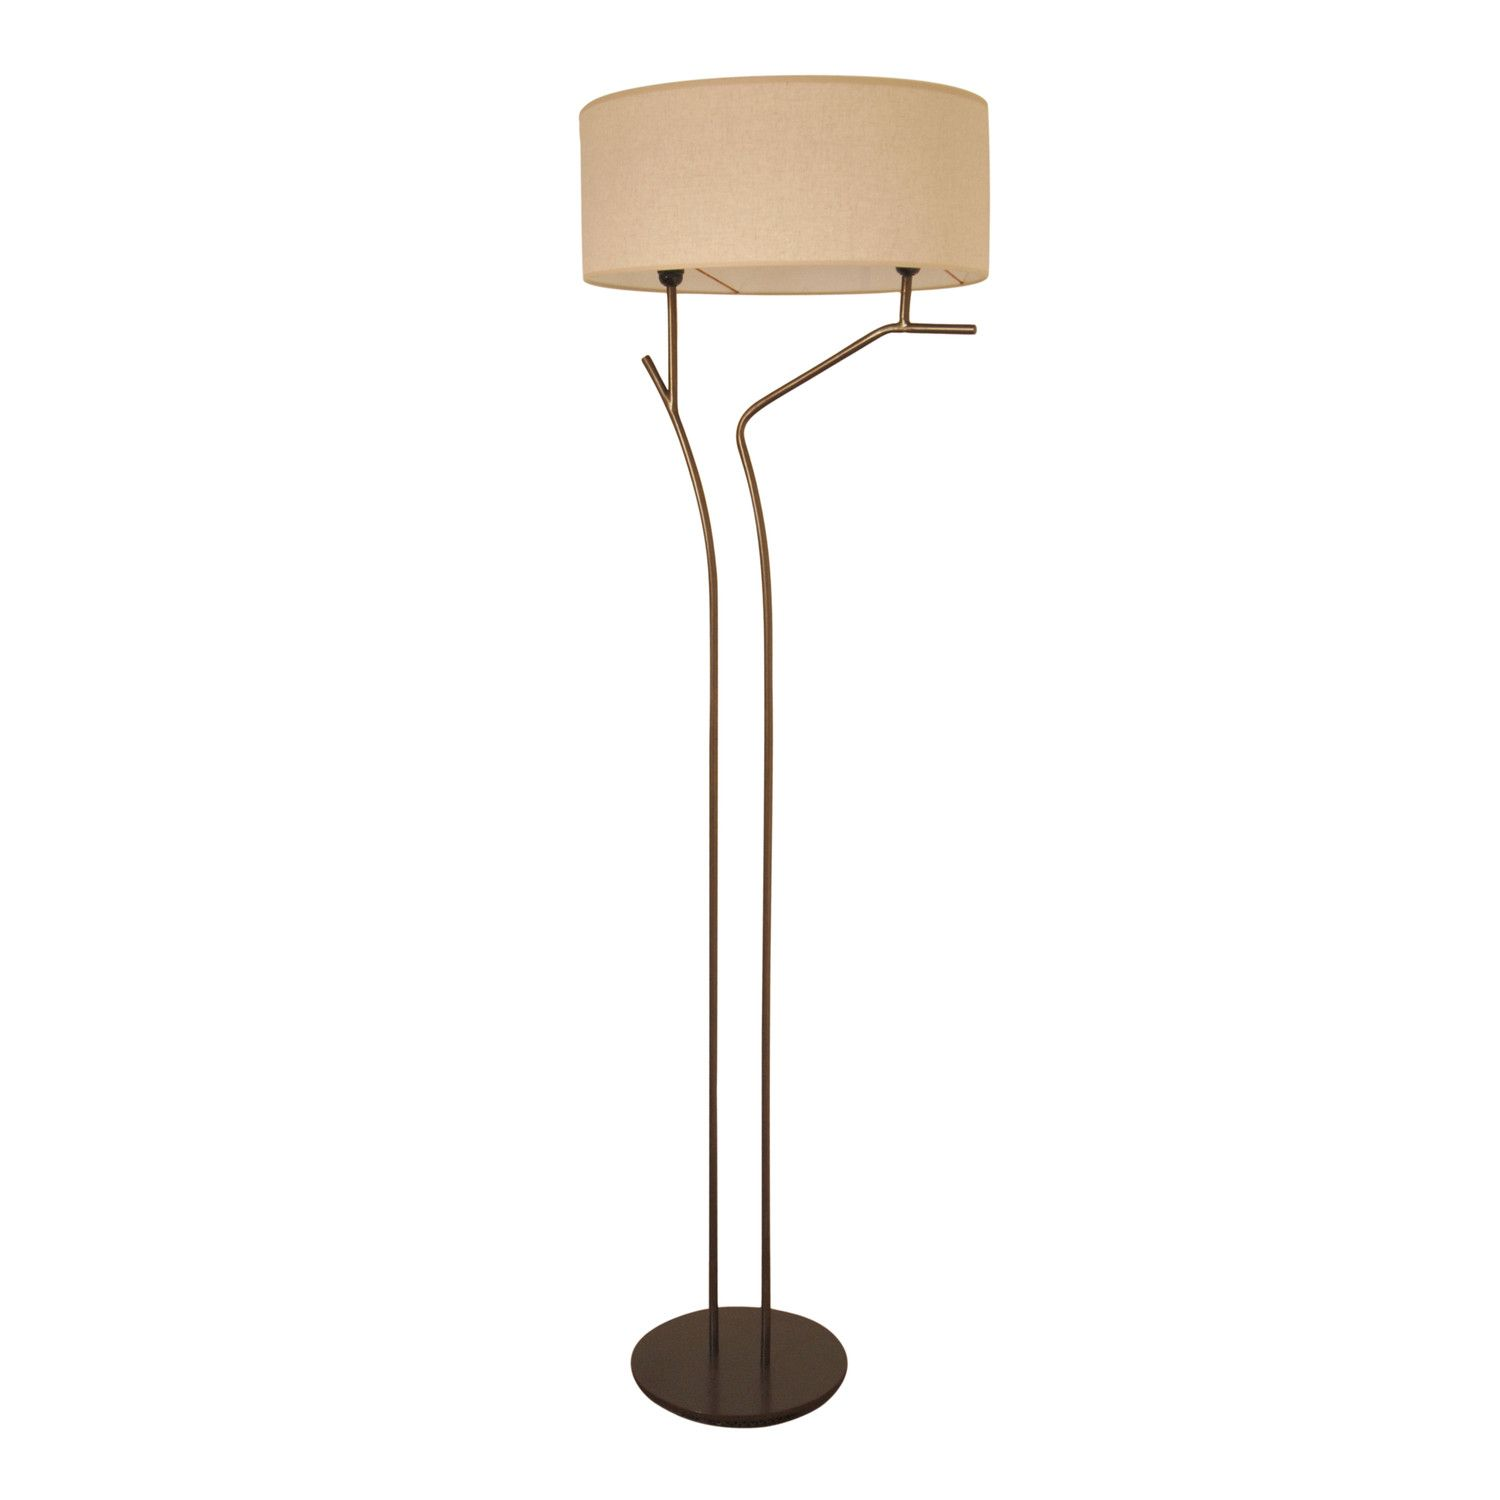 Nature Inspired Palabre Floor Lamp - $1160